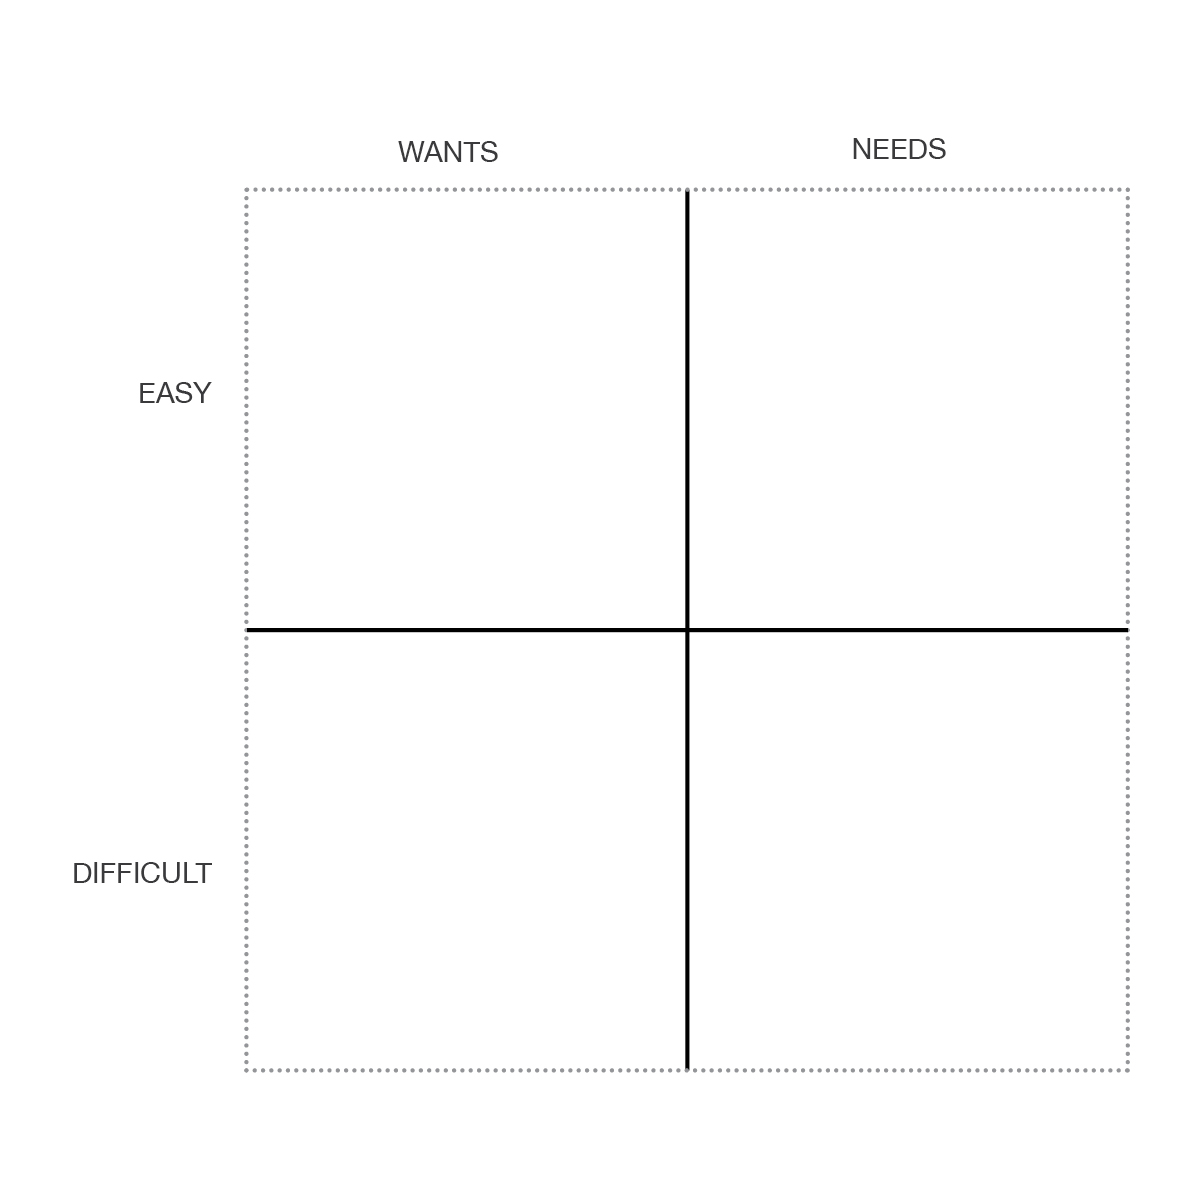 2015-01-13 - Integrating Innovation - Step 5 (2x2 grid)